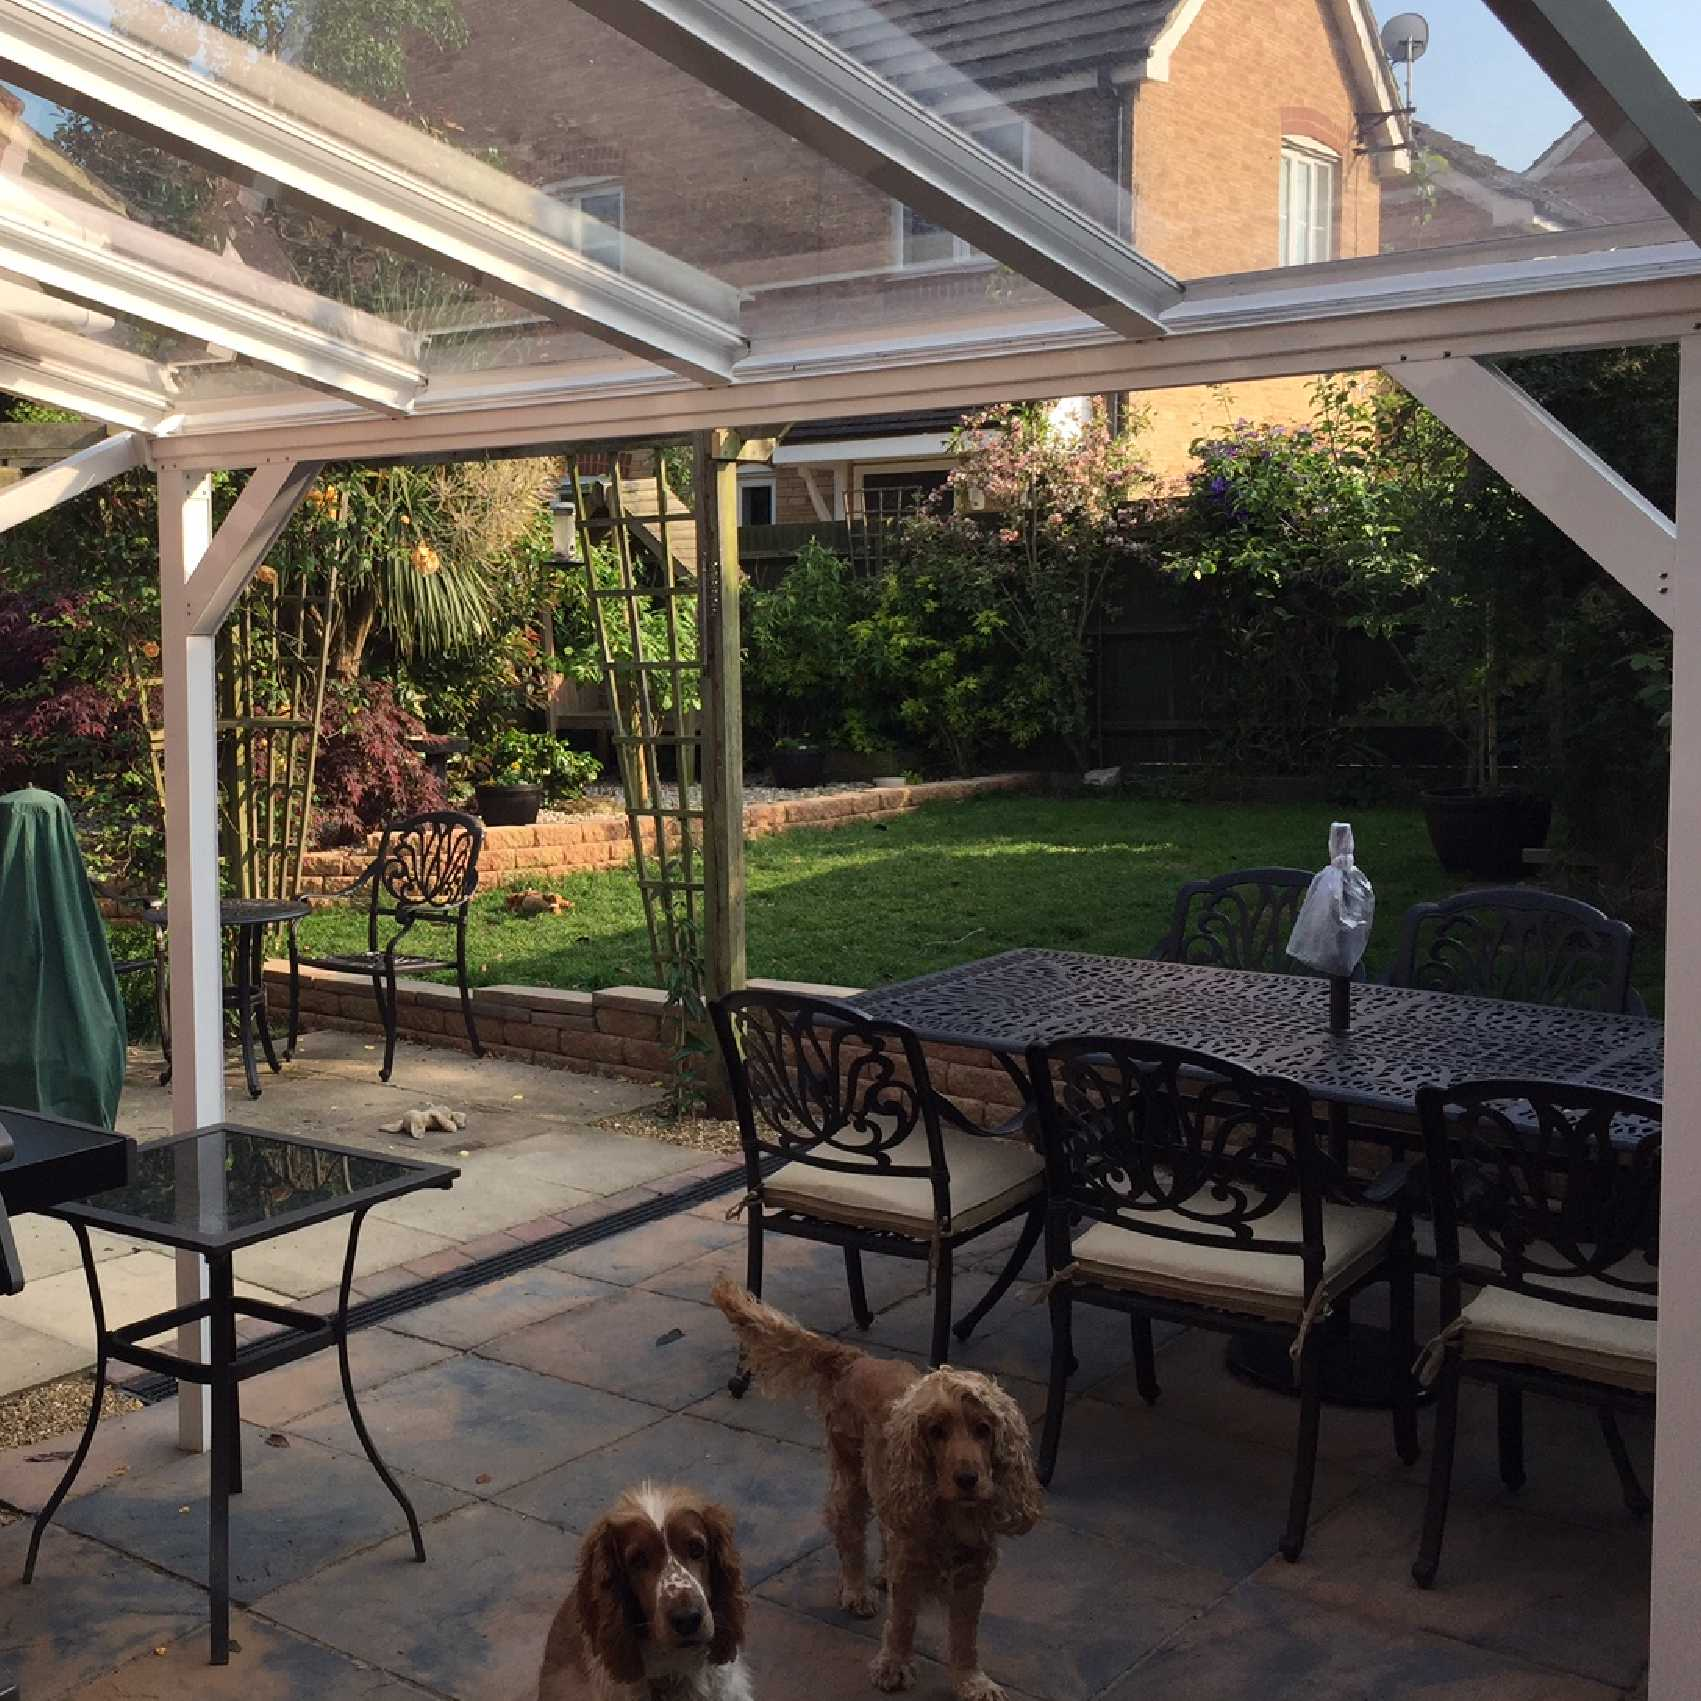 Affordable Omega Smart White Lean-To Canopy with 6mm Glass Clear Plate Polycarbonate Glazing - 2.8m (W) x 3.0m (P), (2) Supporting Posts